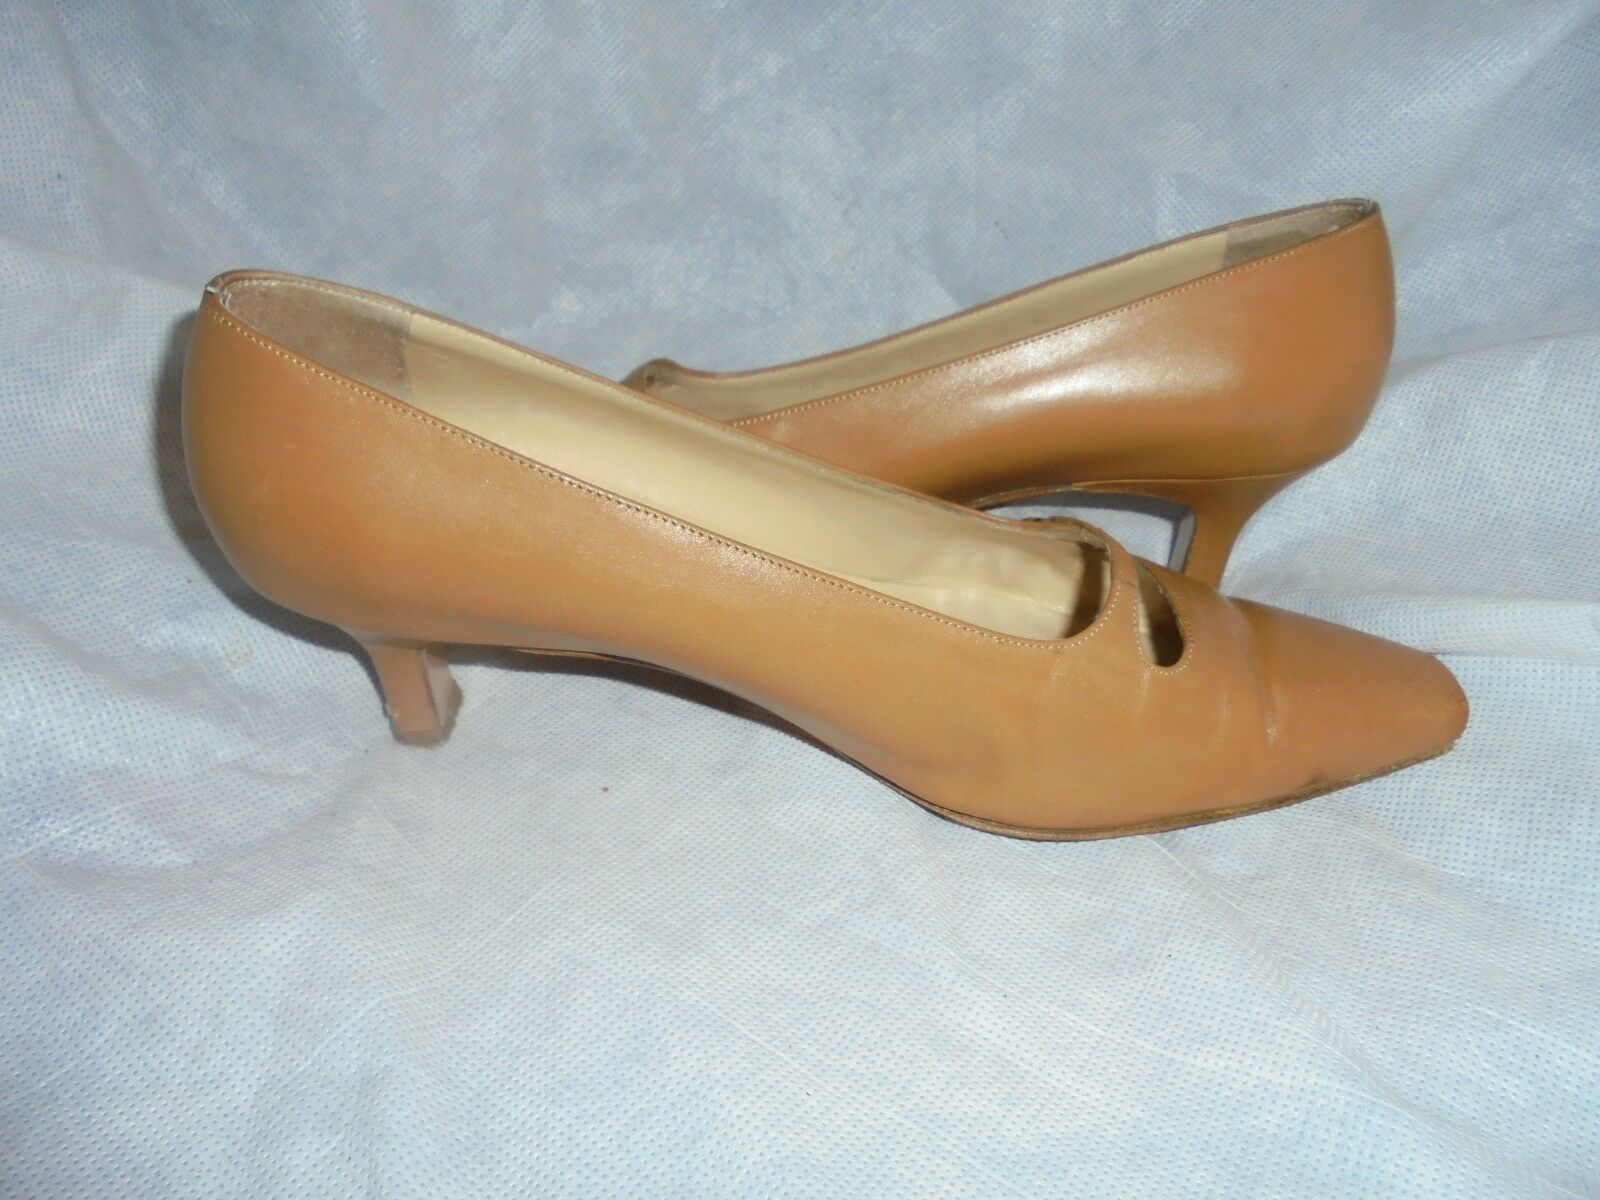 SALVATORE FERRAGAMO Damenschuhe TAN LEATHER SLIP 5 ON SHOE SIZE UK 5 SLIP EU 38 us 8 VGC 143597